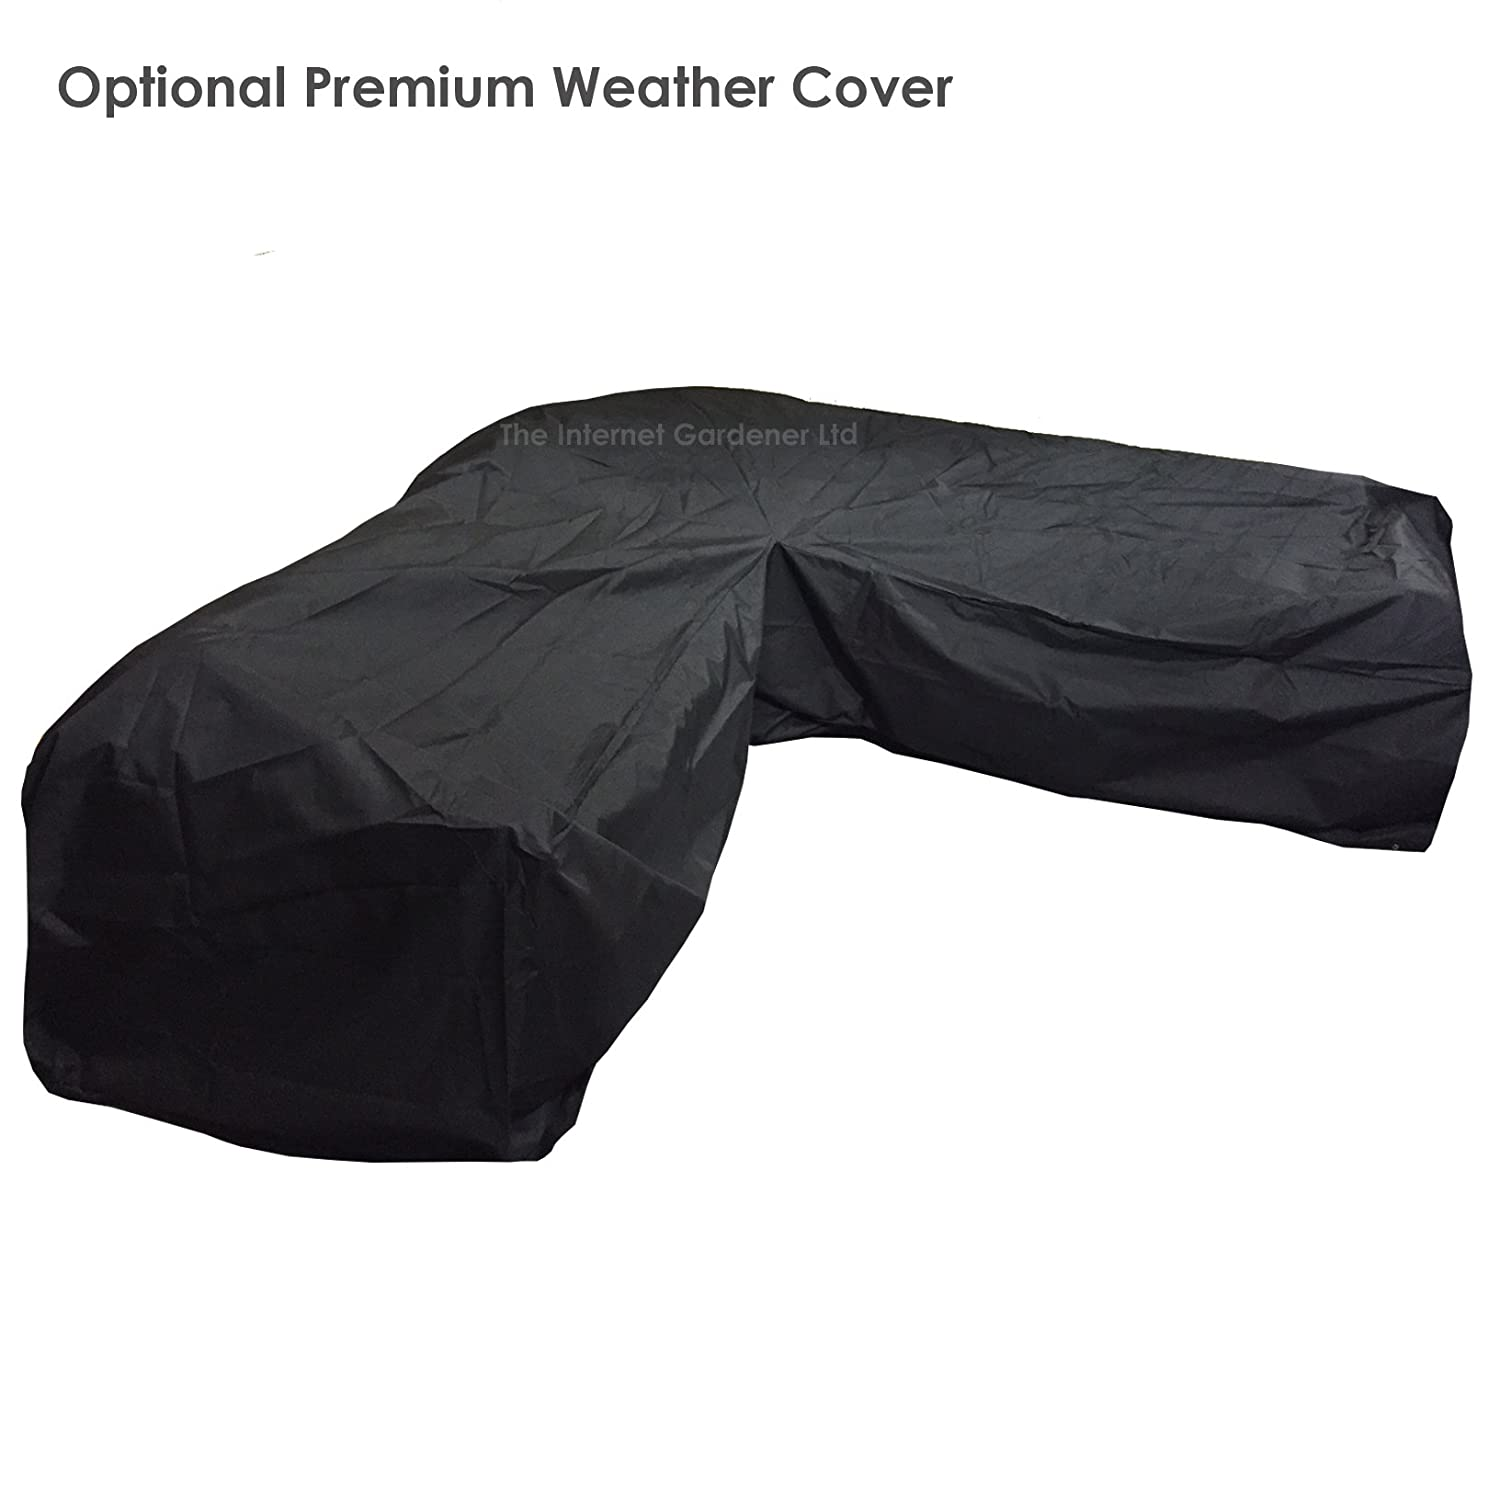 rattan outdoor furniture covers. high quality black outdoor u0027lu0027 shaped rattan corner sofa weather cover amazoncouk garden u0026 outdoors furniture covers i